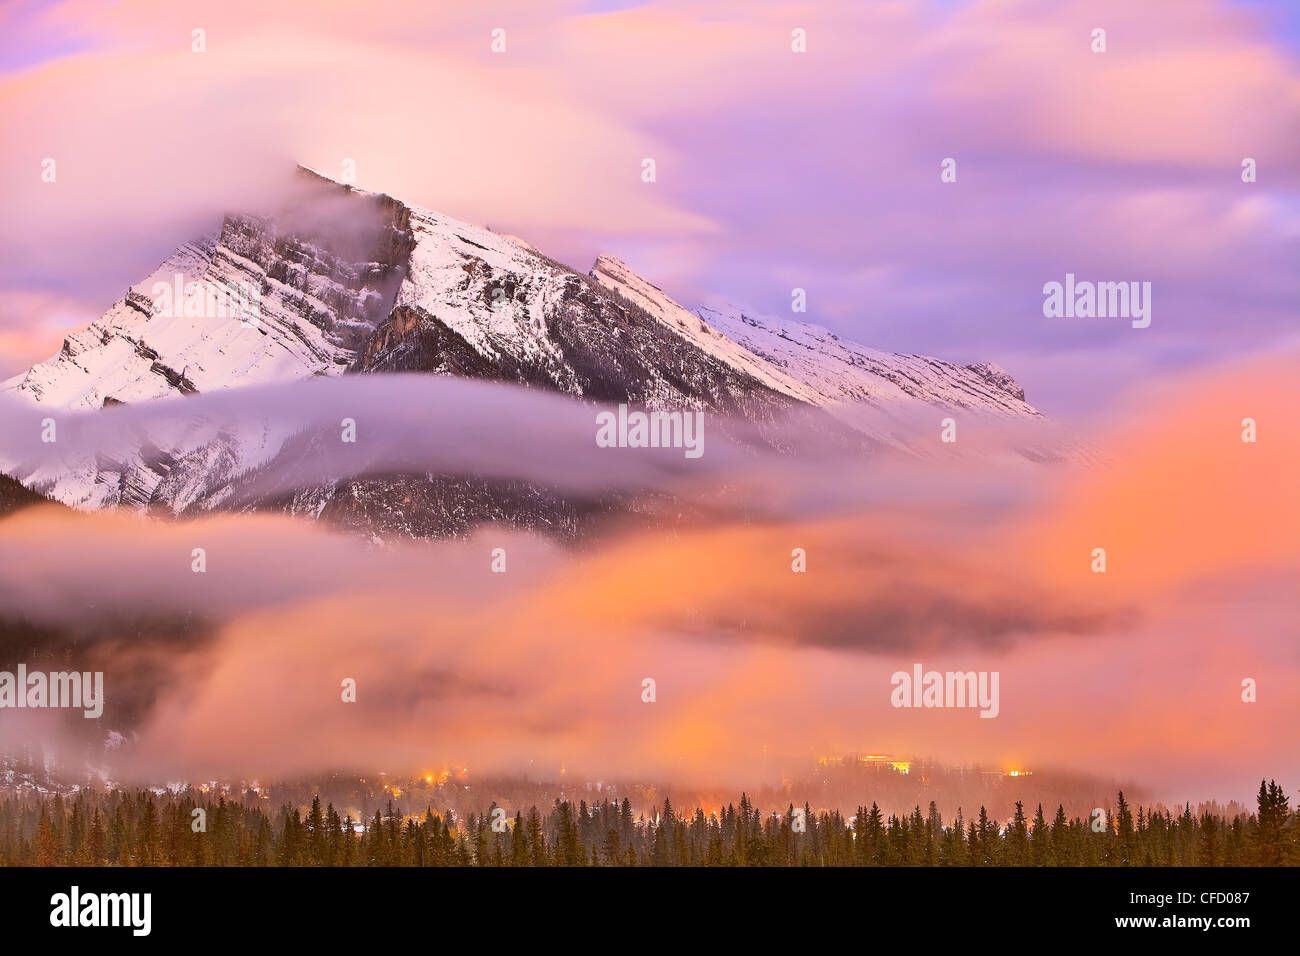 Mount Rundle, Banff townsite at dusk and dramatic clouds. Banff National Park, Alberta, Canada. - Stock Image